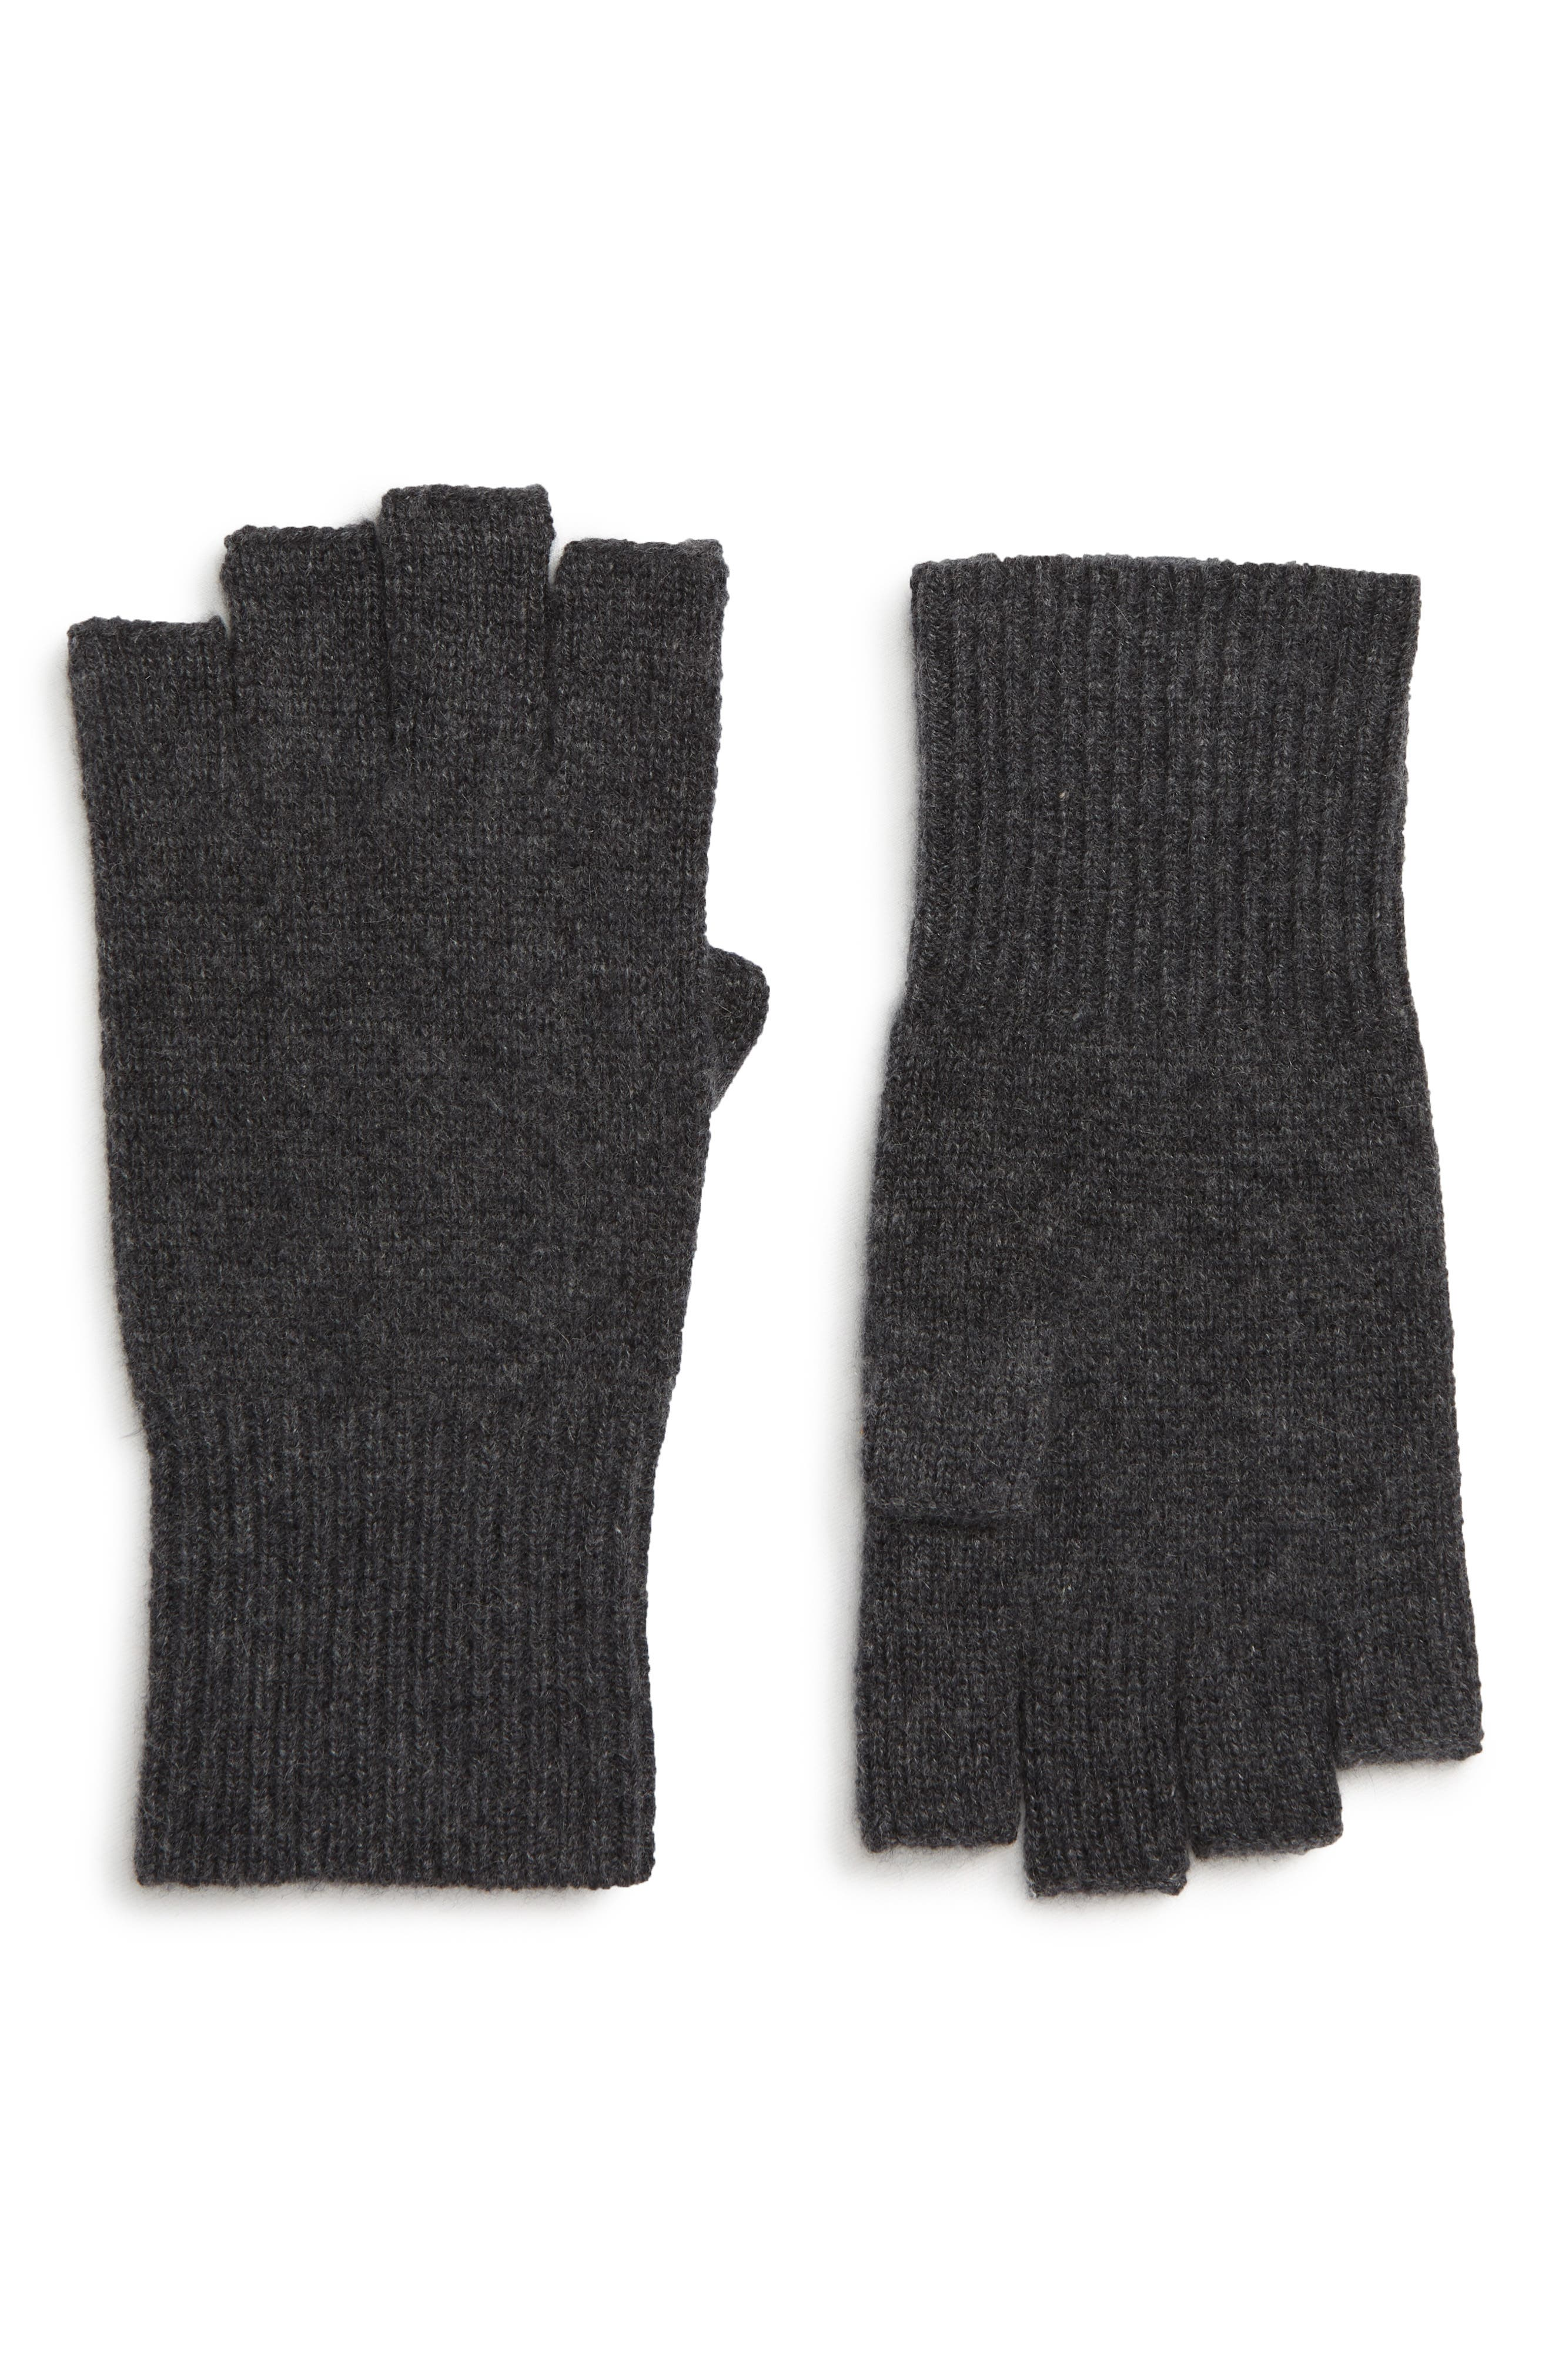 Cashmere Fingerless Gloves,                             Main thumbnail 1, color,                             GREY CHARCOAL HEATHER